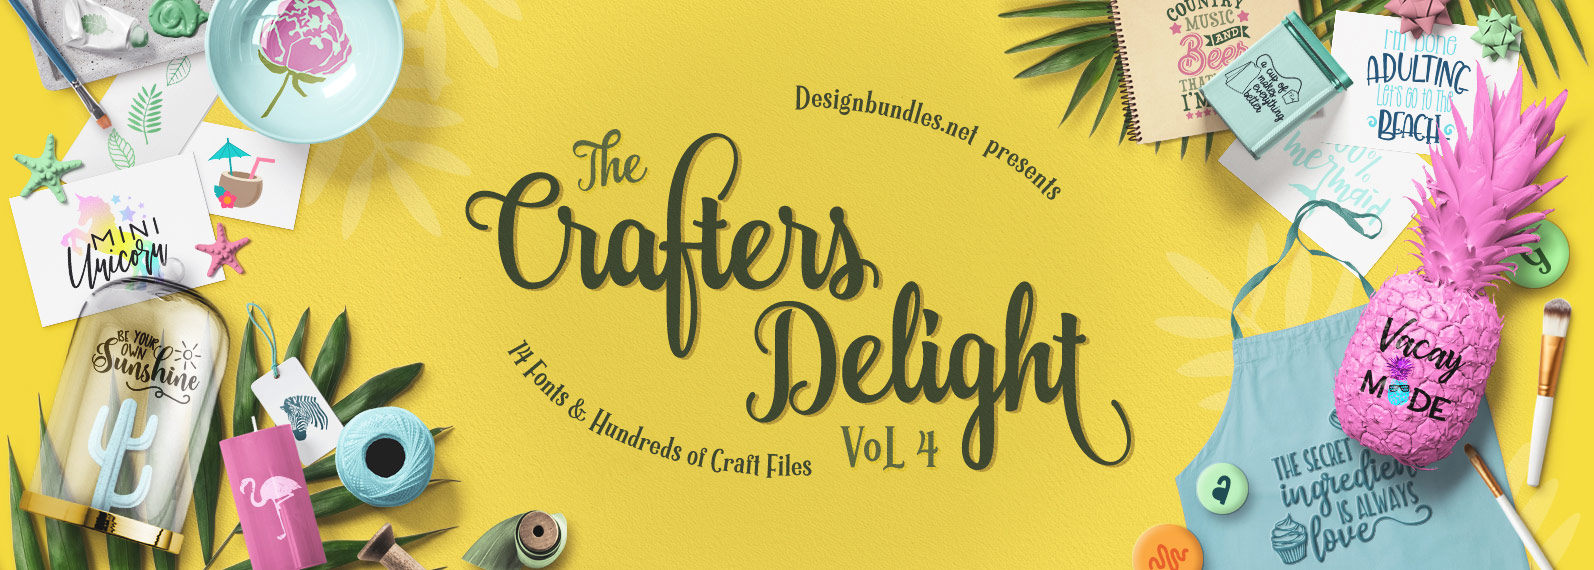 Crafters Delight Volume IV Cover